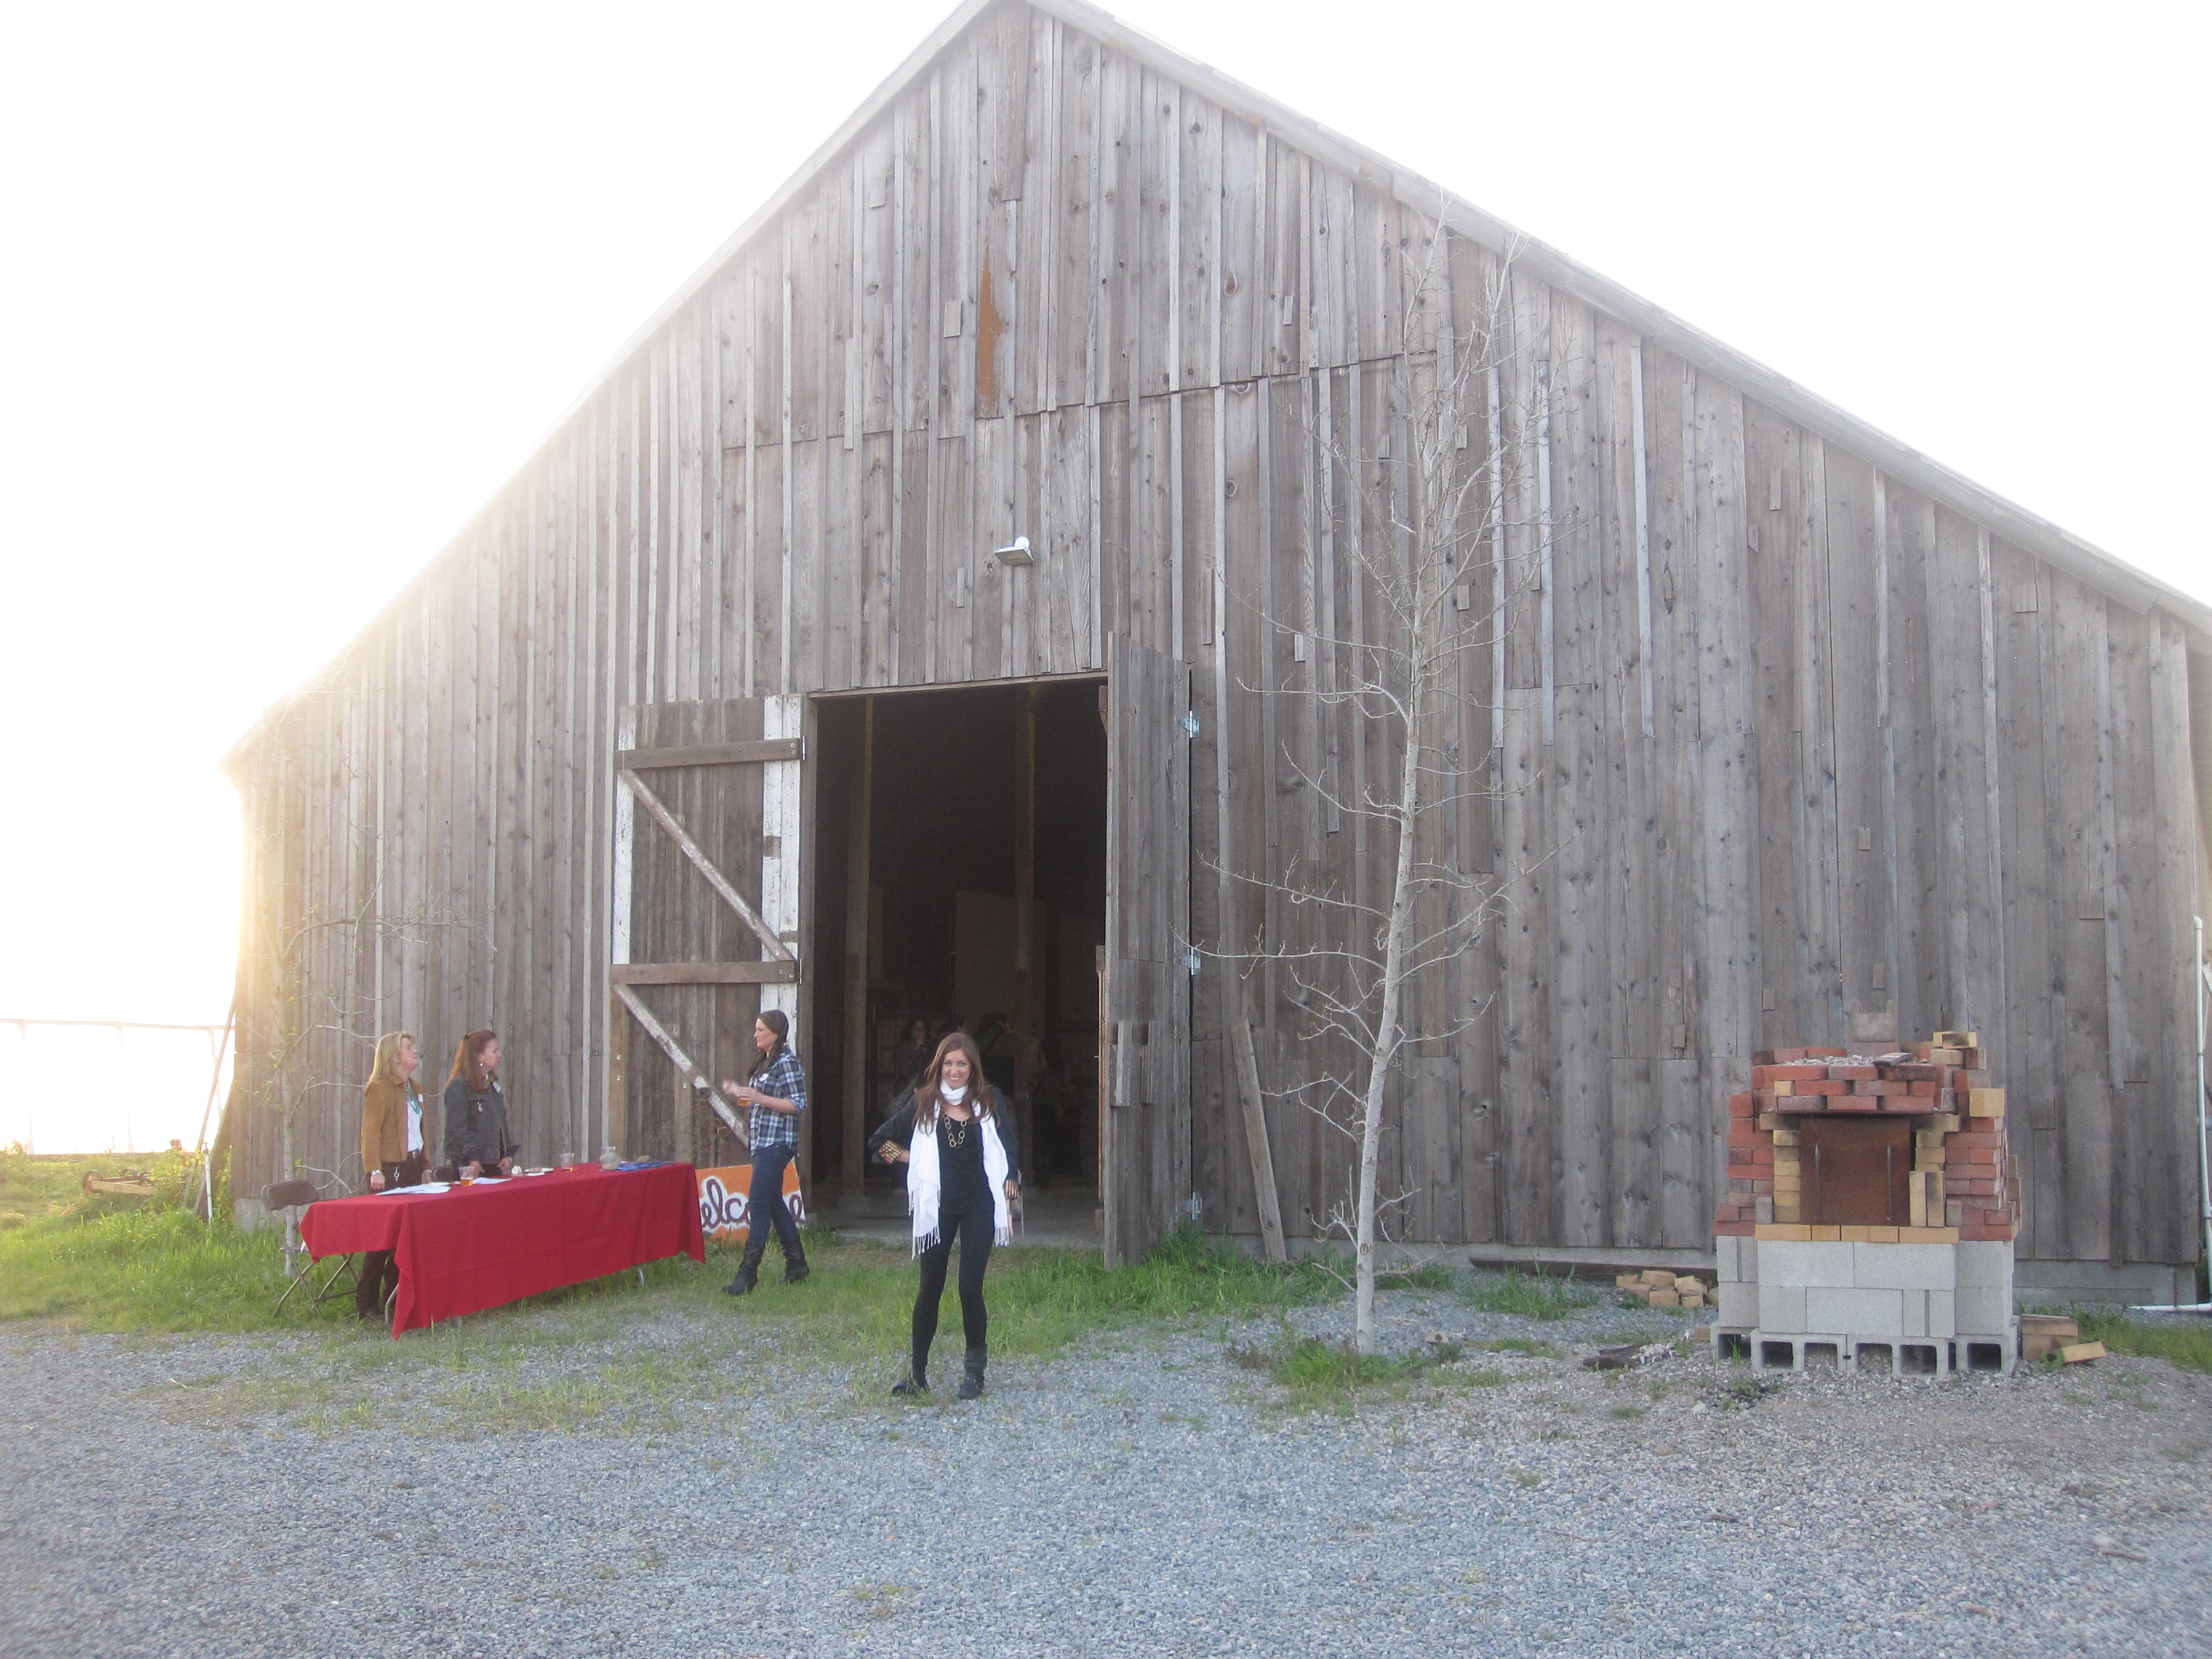 From the outside, the barn doesn't look like much of a party. But inside, it was perfectly decorated.